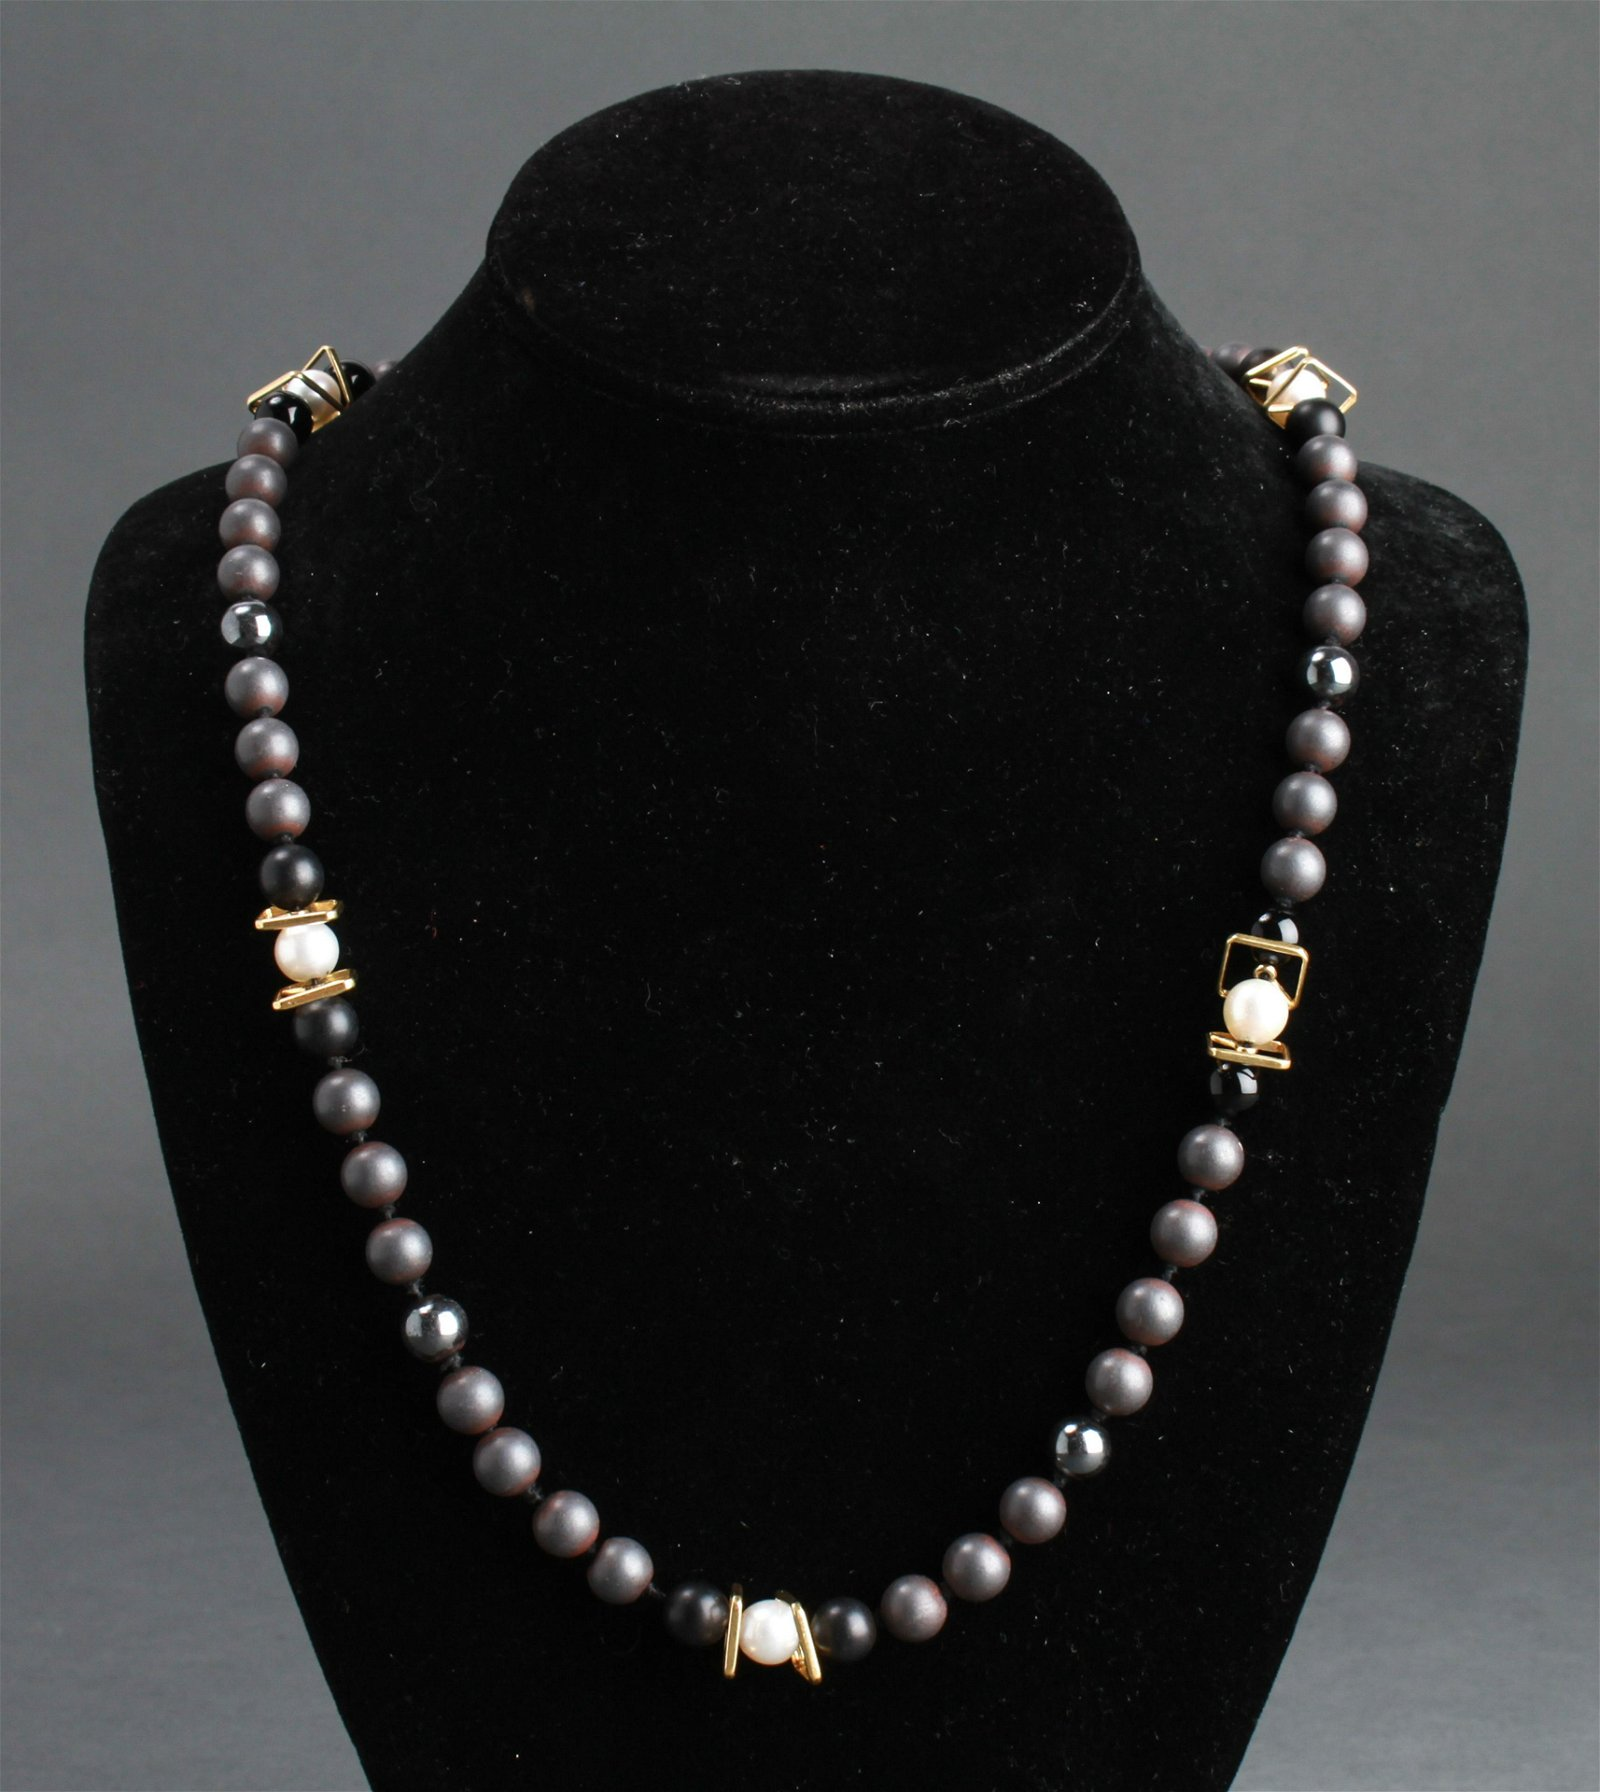 18K Gold Pearls Hematite & Onyx Beads Necklace